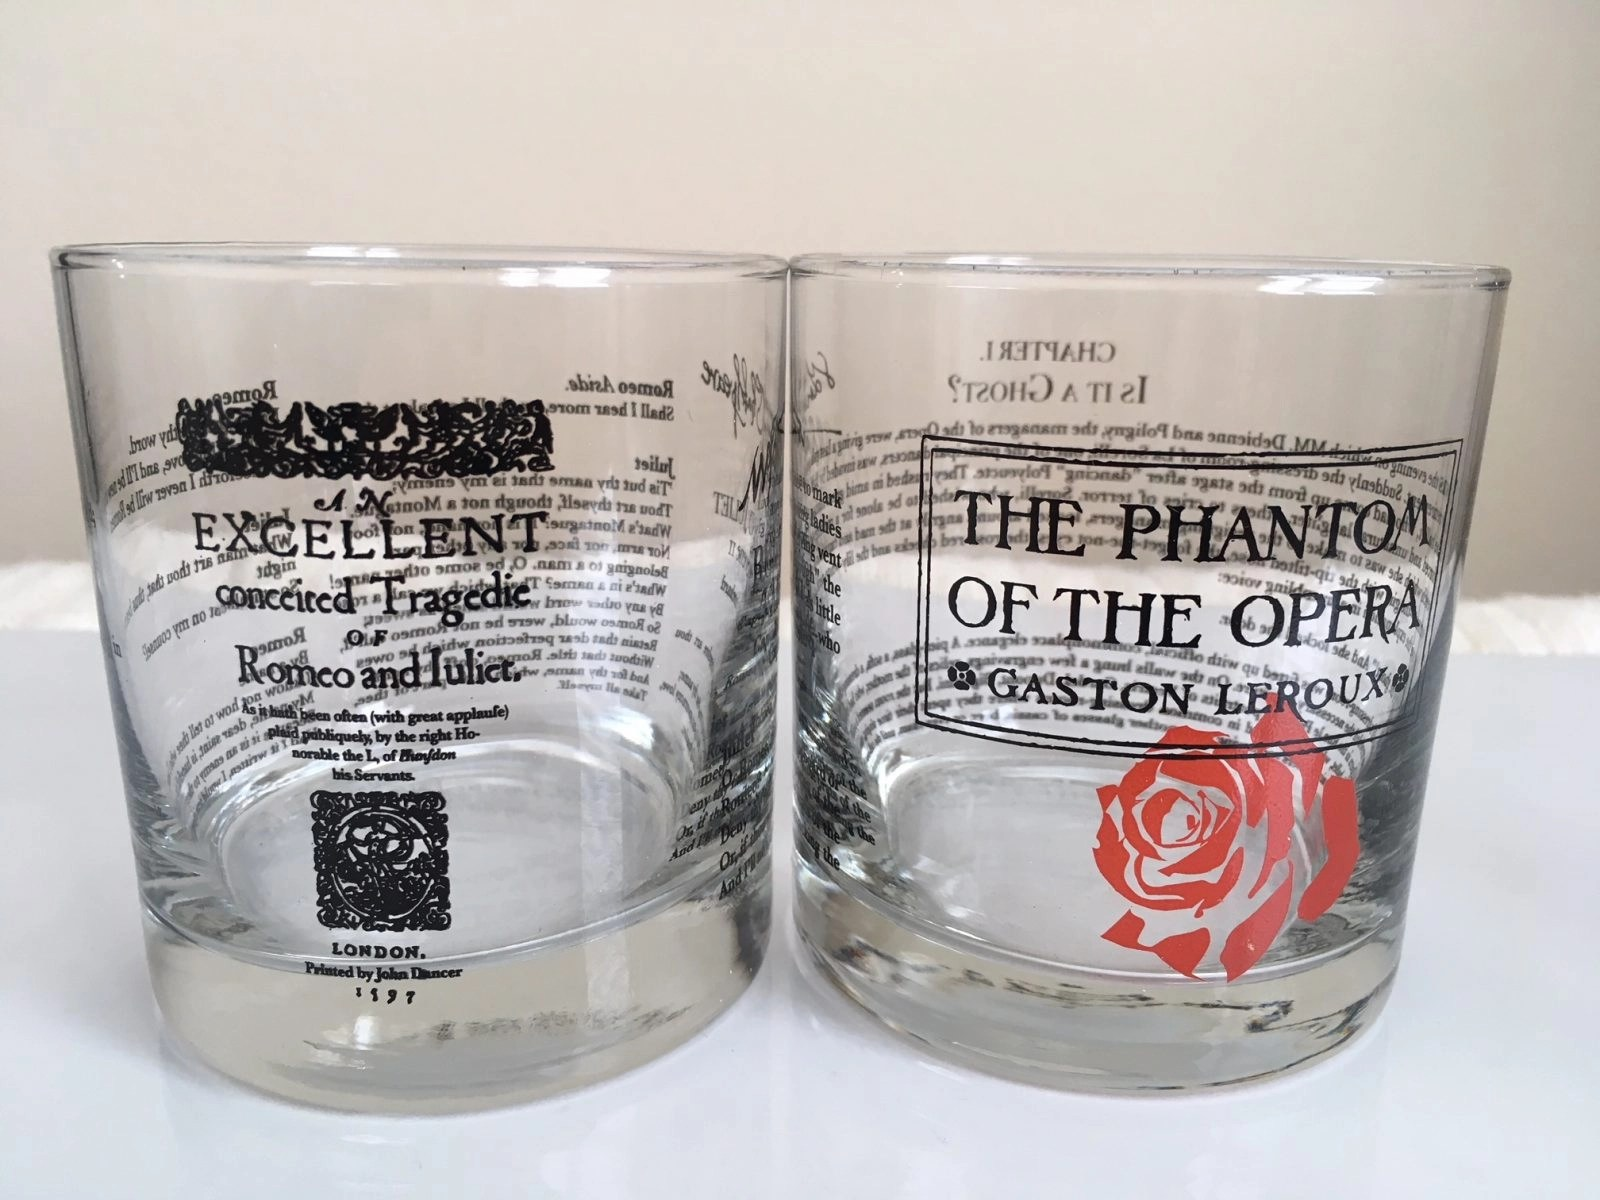 Uncommon Green Engraved Glassware - Fun Engraving on Glasses of Plays and Shows